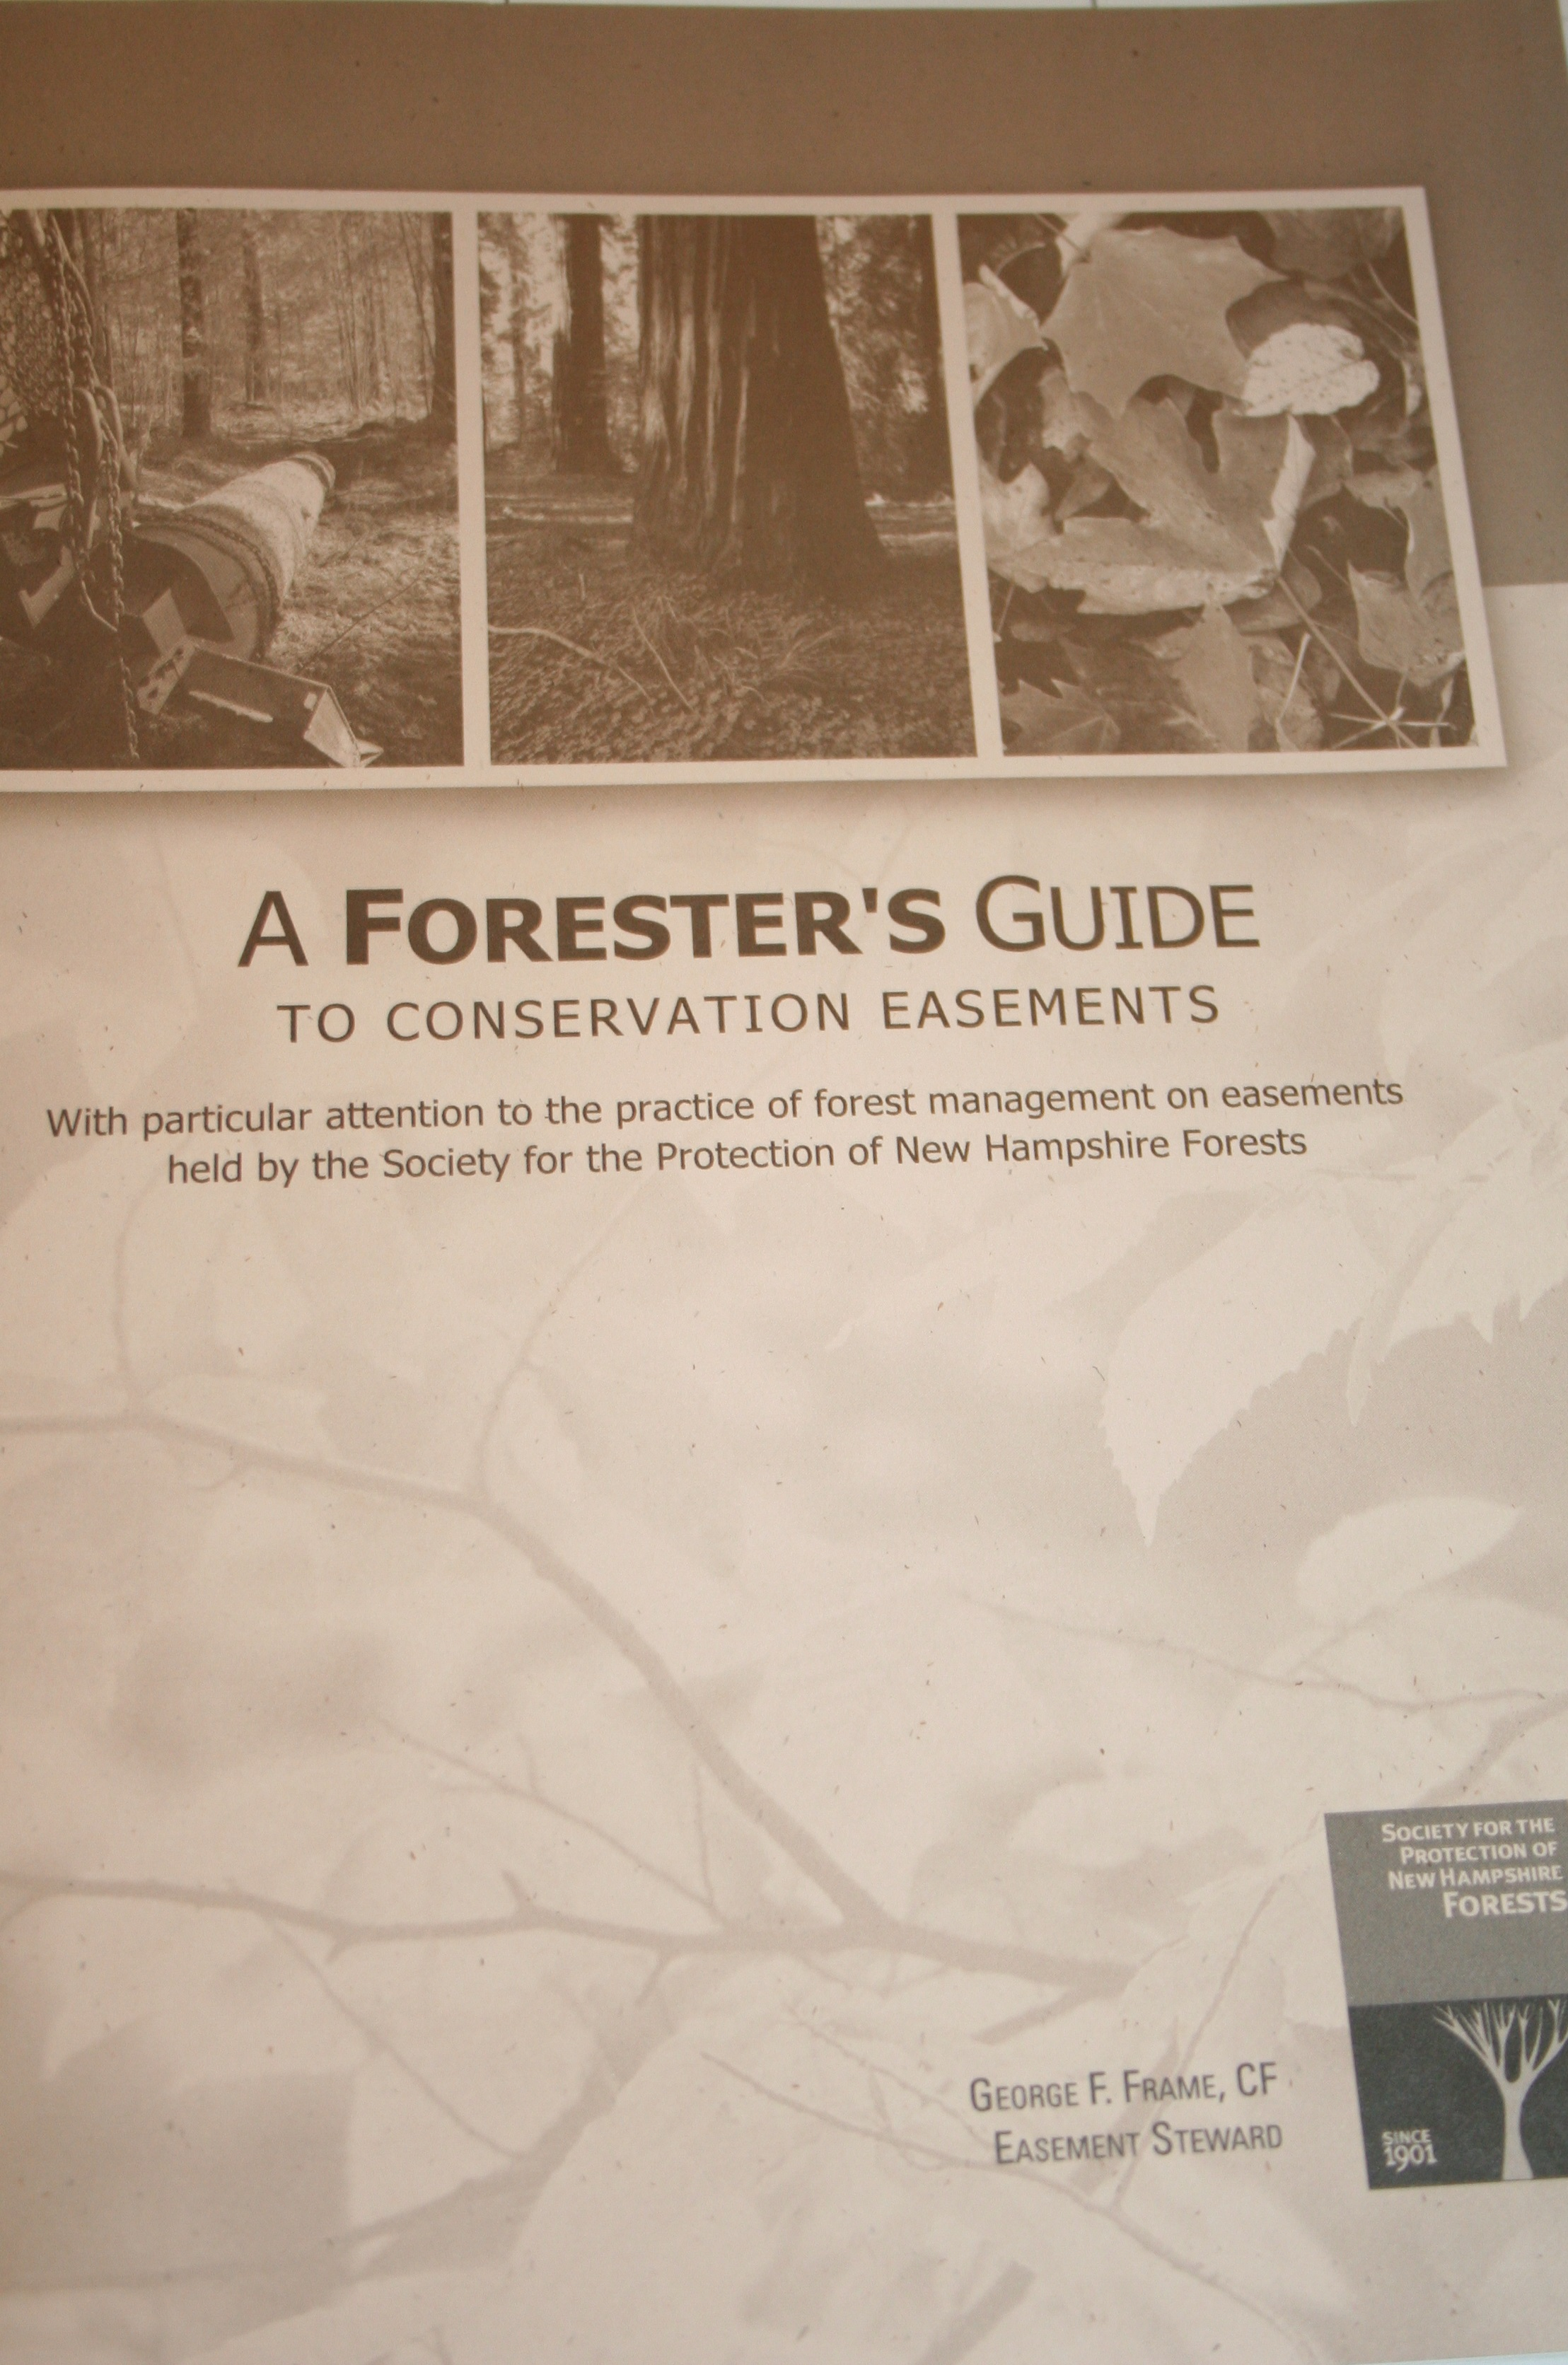 FORESTERS GUIDE 2015